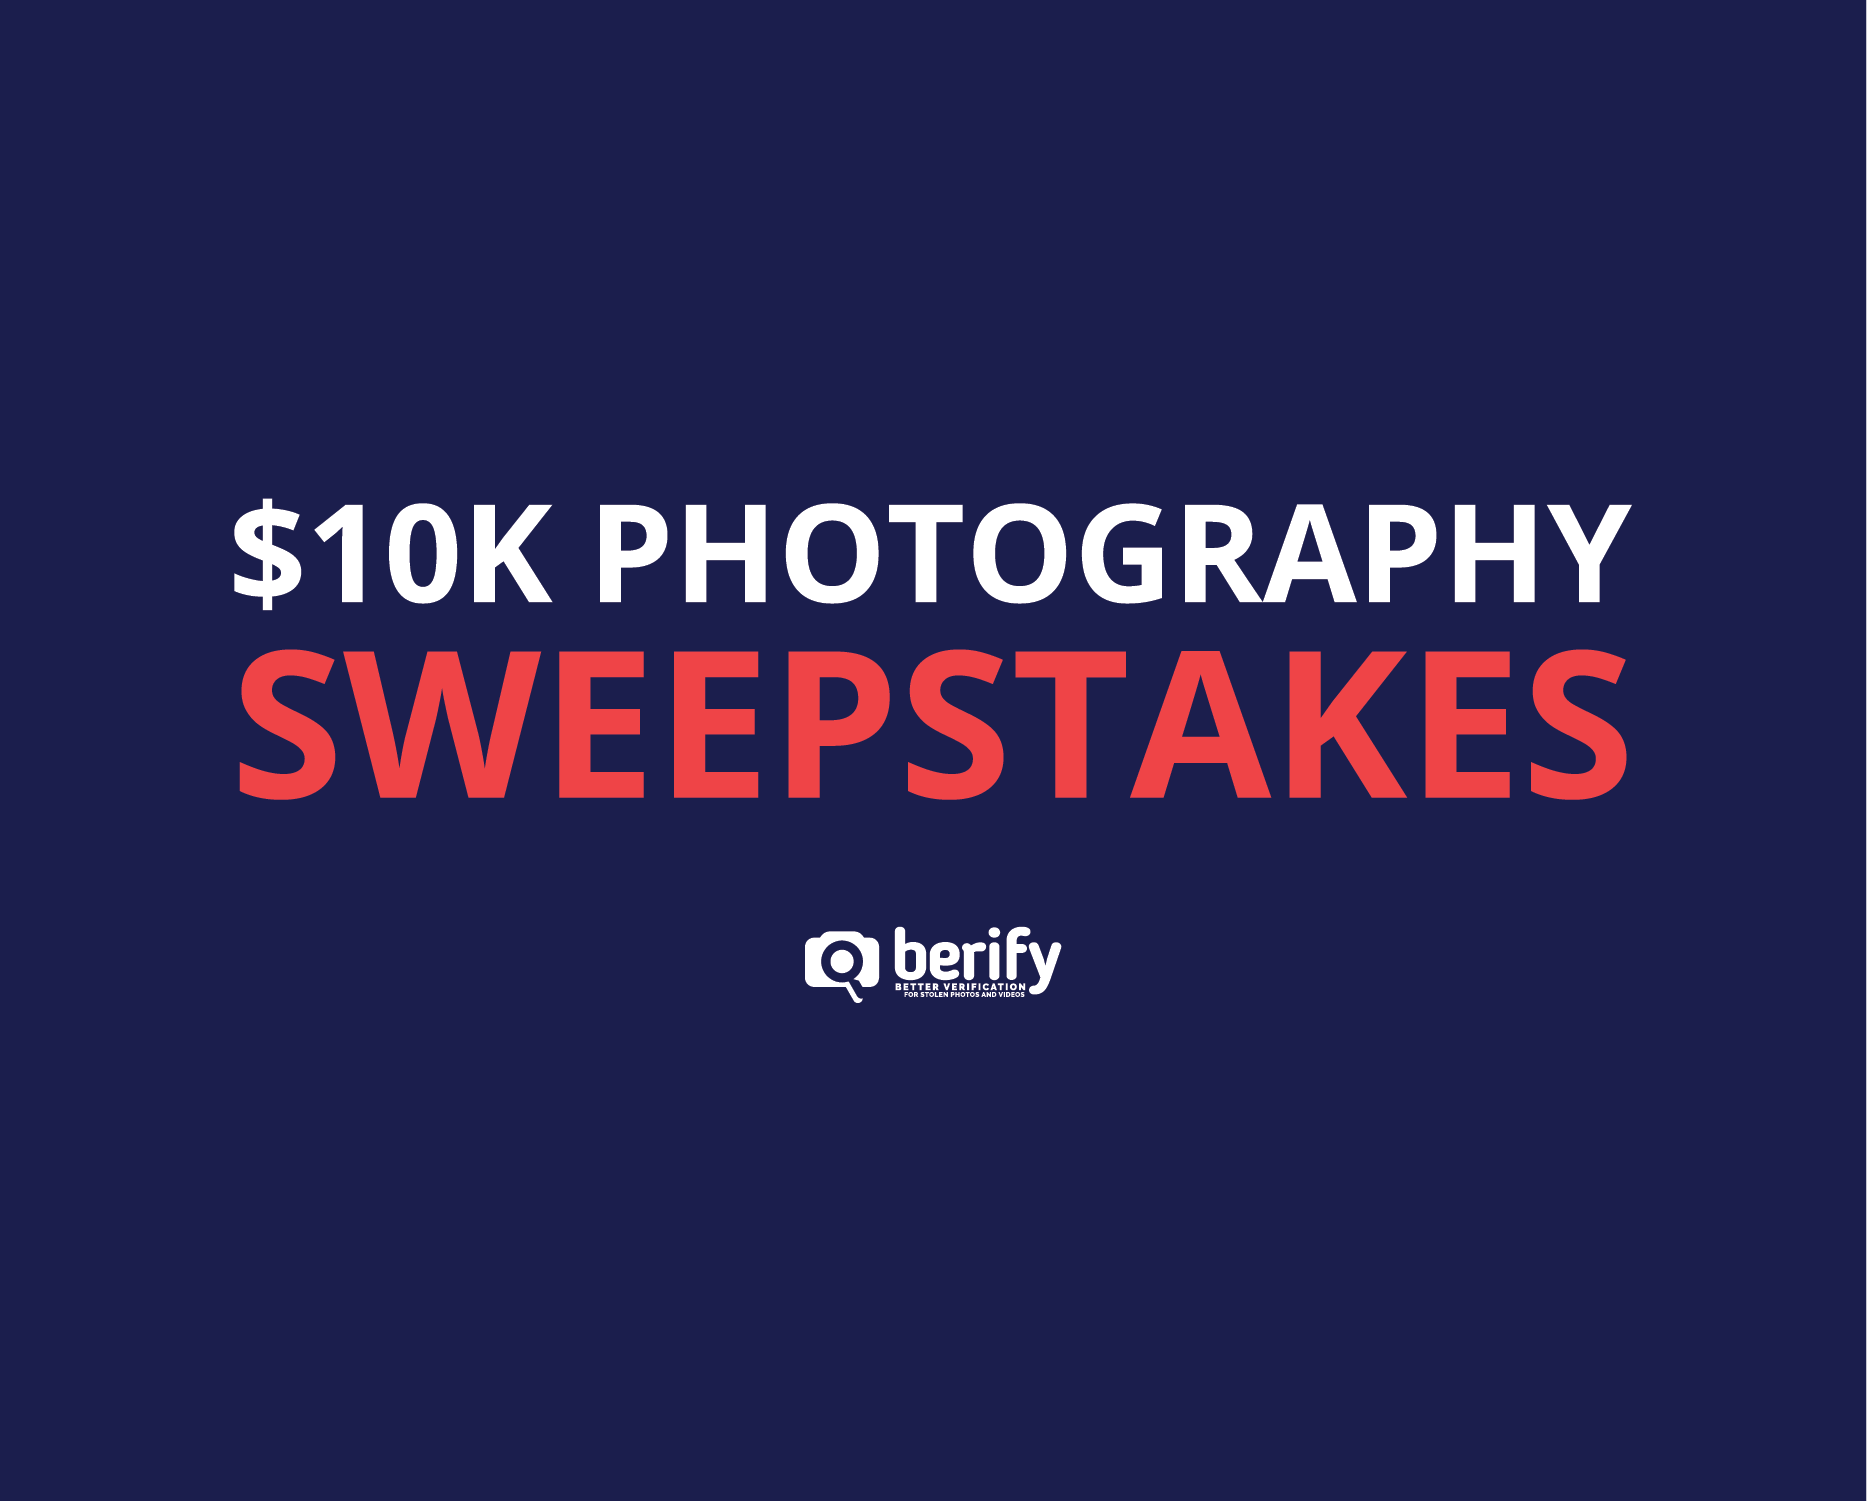 $10K Photography Sweepstakes with a Famous Photographer!